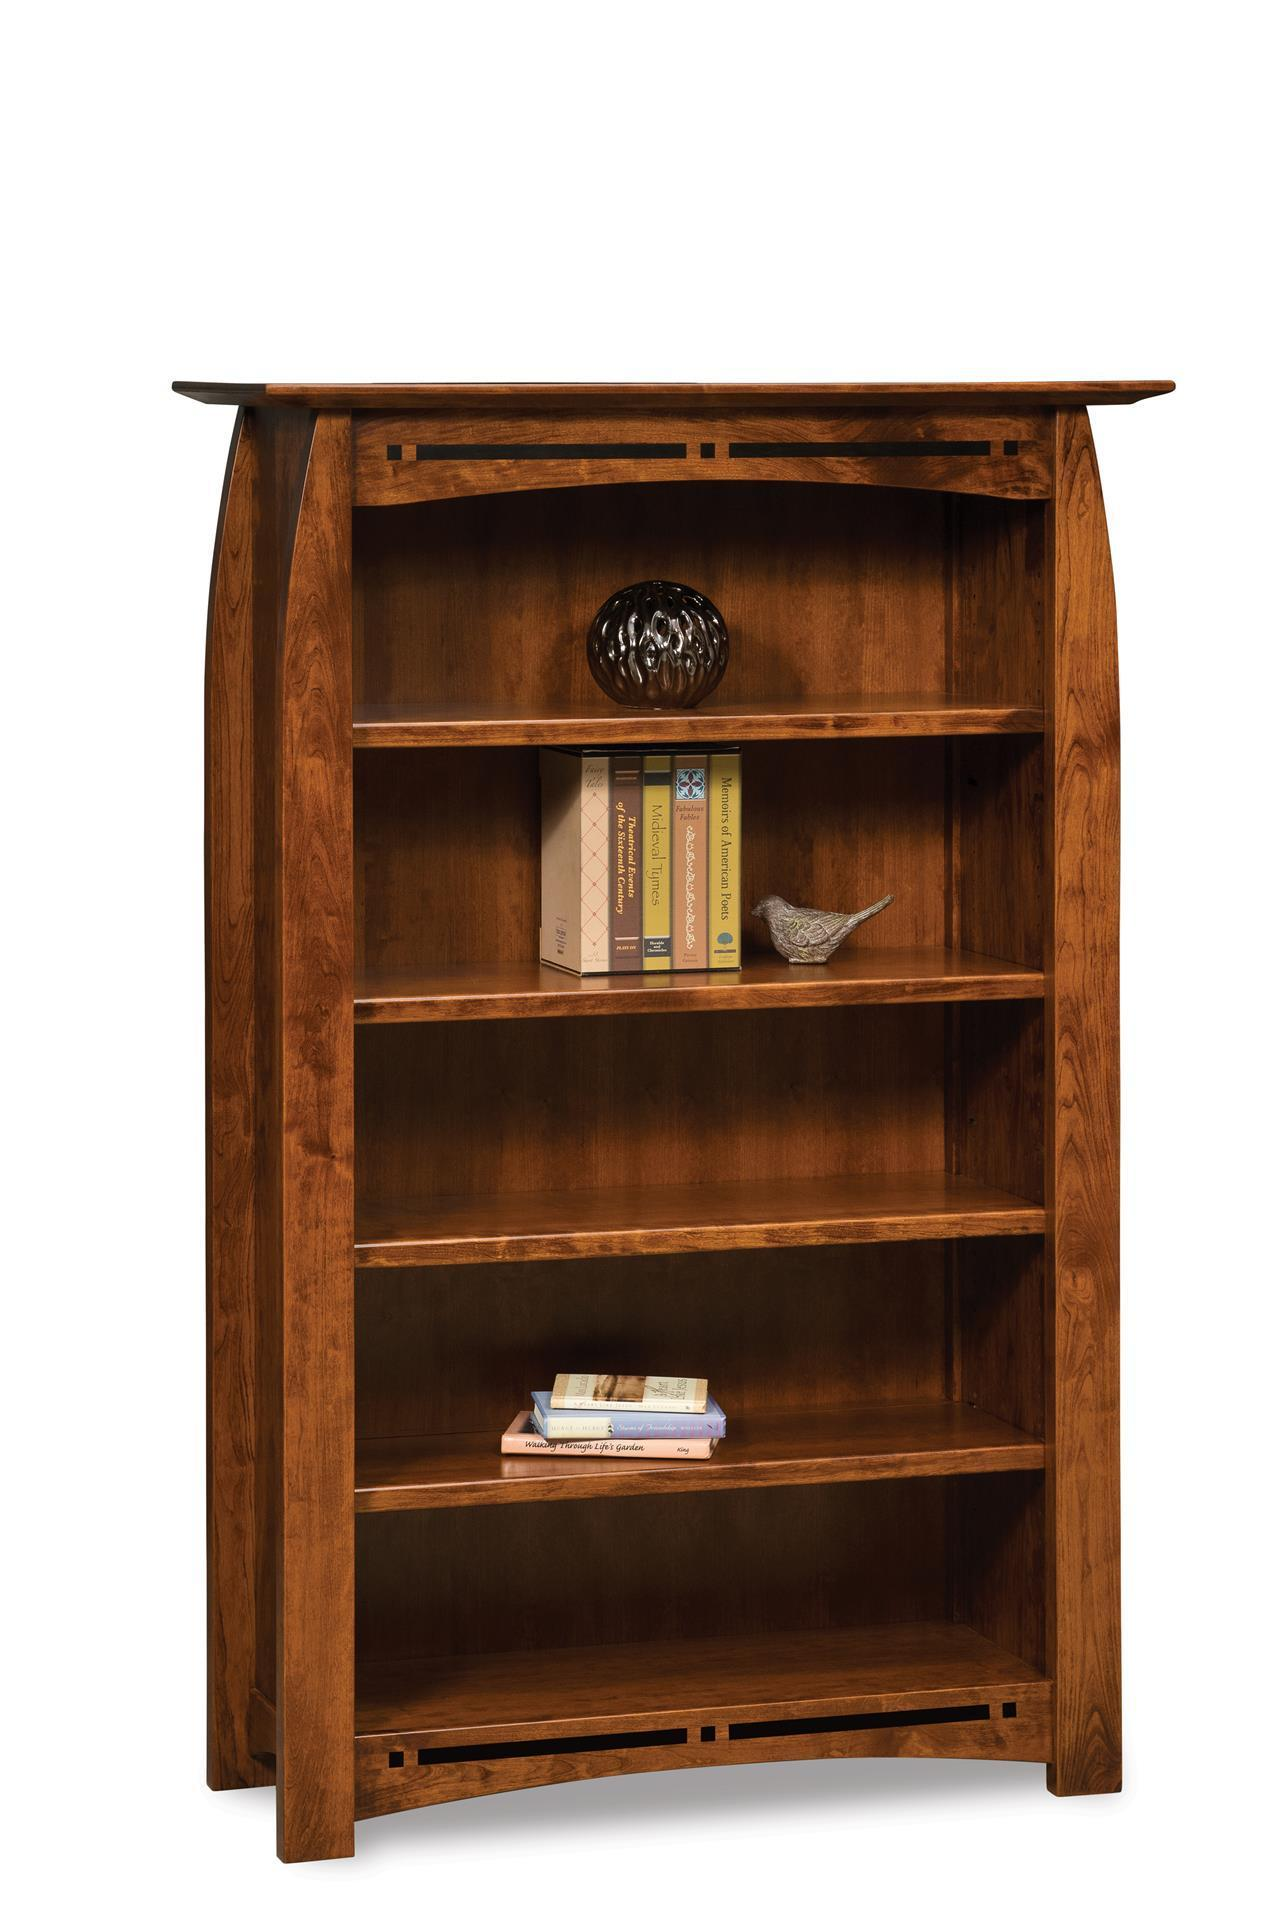 Boulder Creek Bookcase 39 Quot Wide From Dutchcrafters Amish